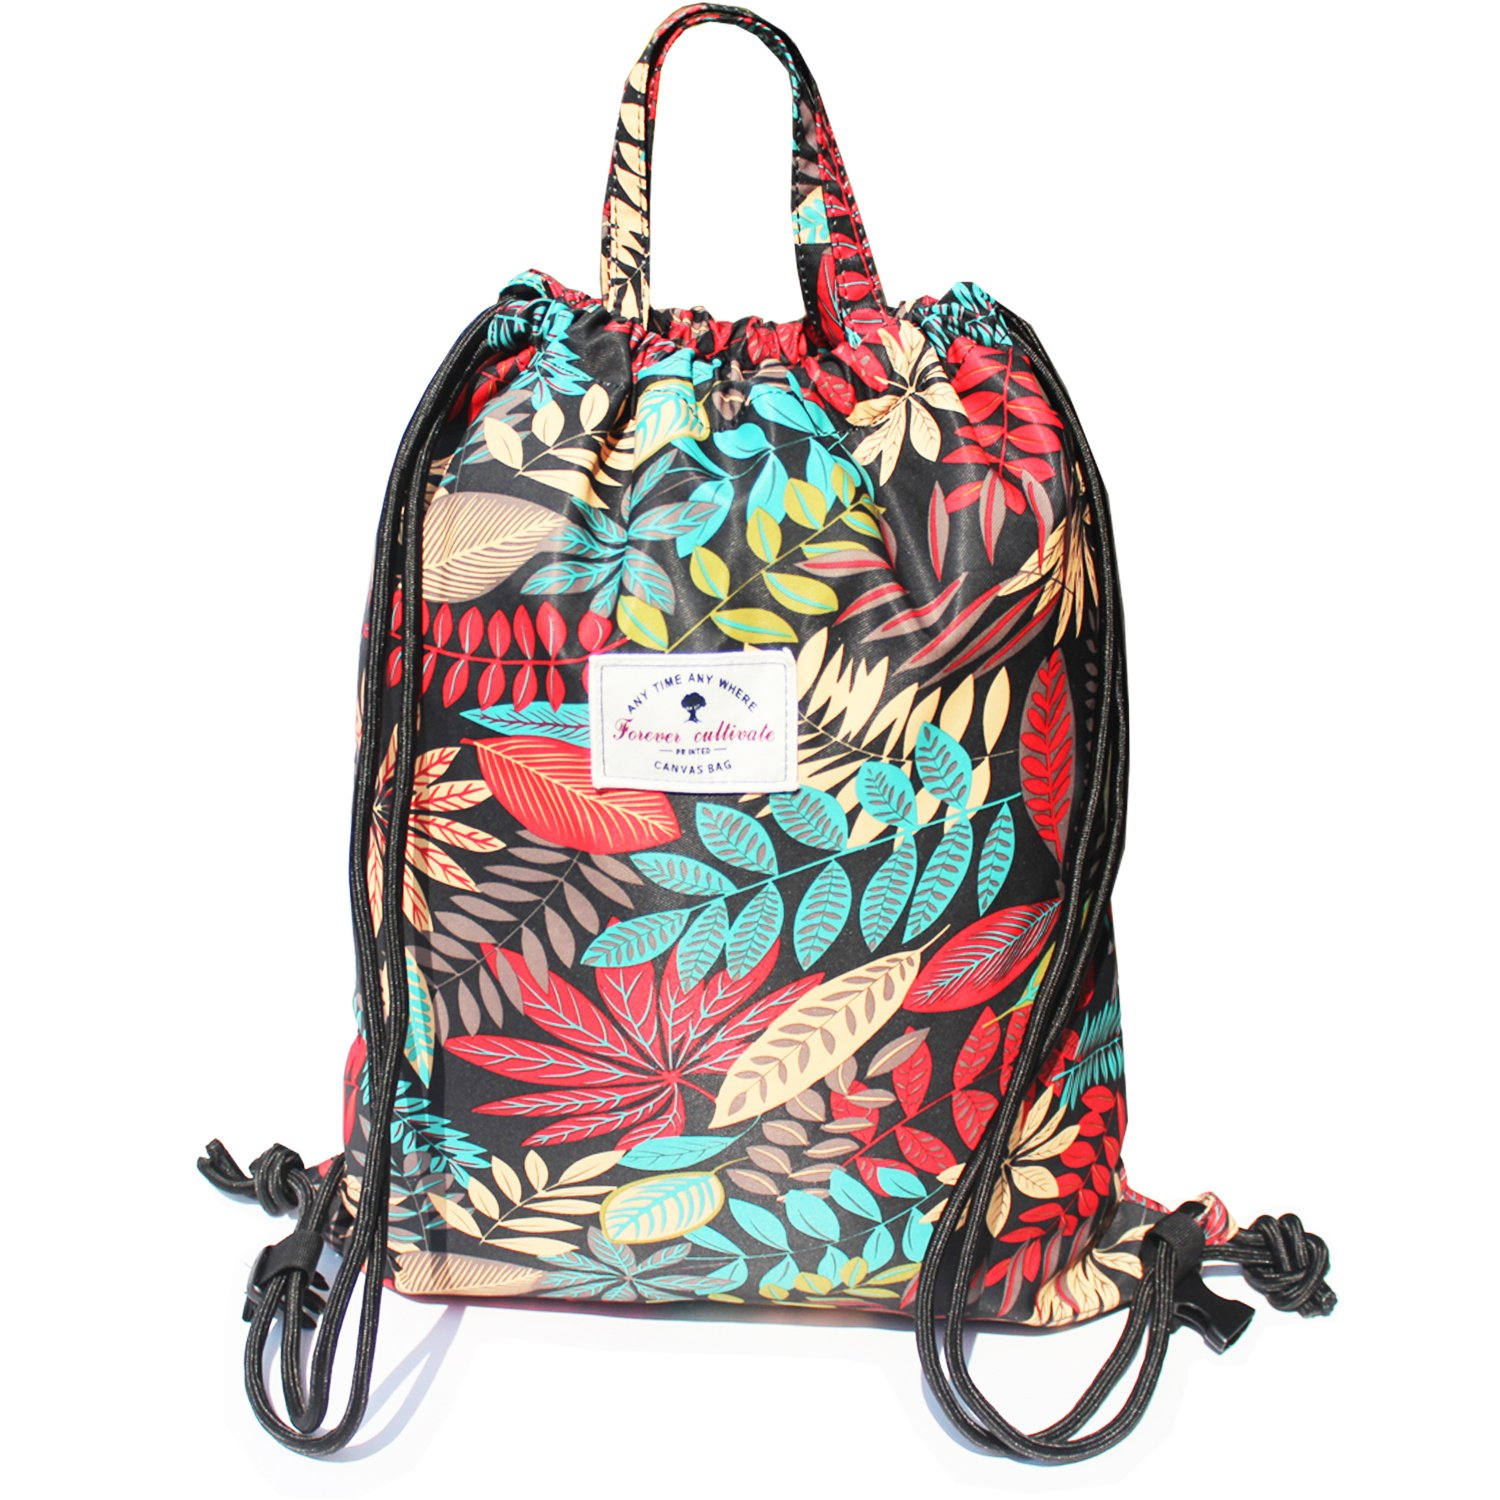 Drawstring Backpack Original Floral Leaf Tote Bags Sackpack for Shopping Yoga Gym Hiking Swimming Travel Beach 2 Sizes&20 Patterns by ESVAN (Image #1)